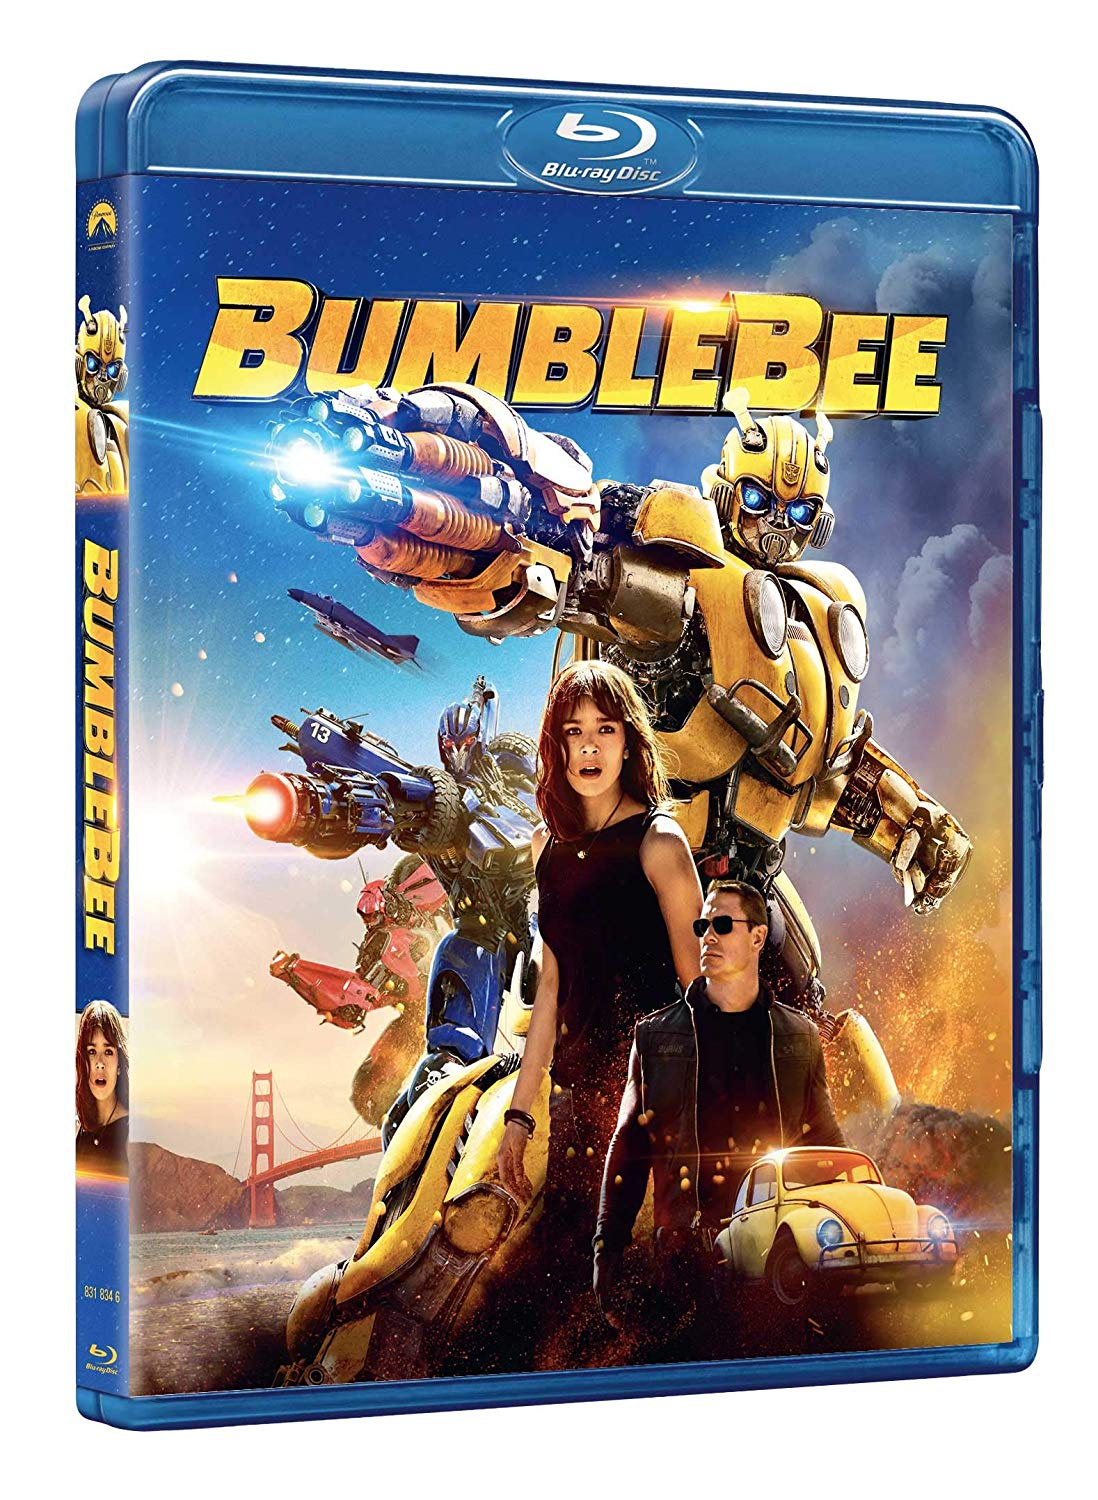 BUMBLEBEE arriva in home video